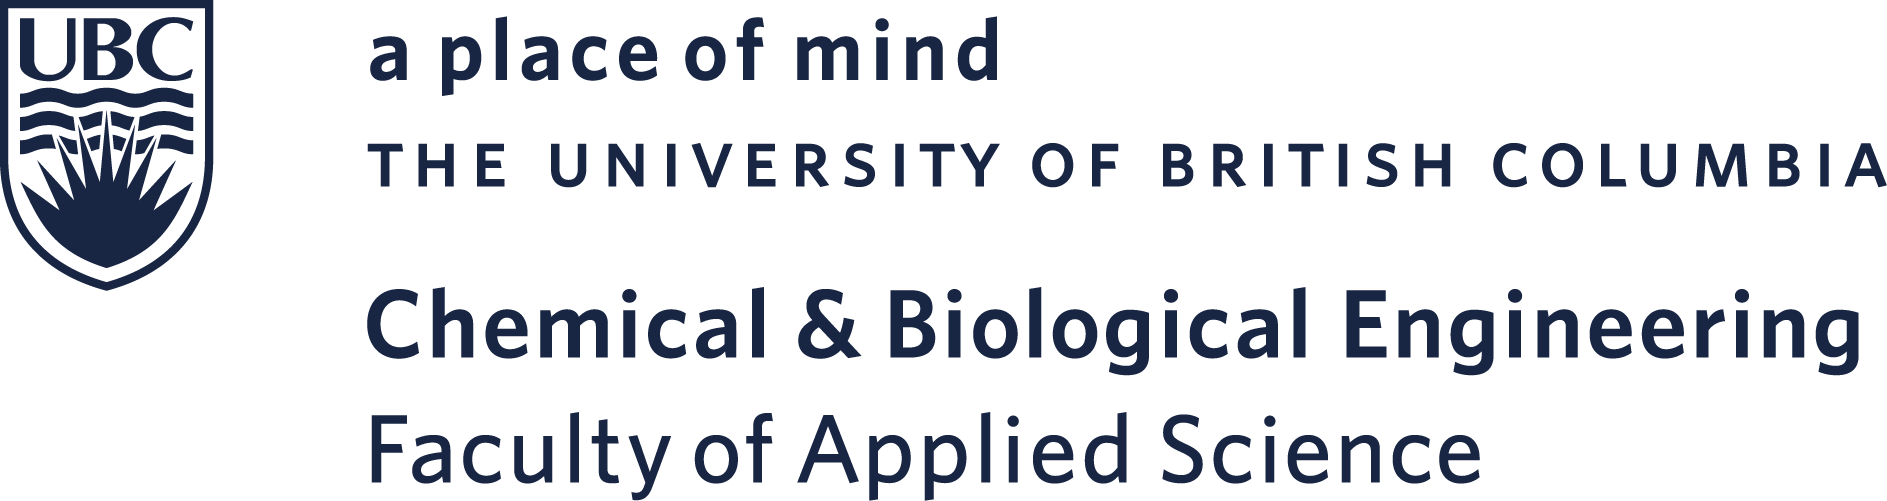 UBC Chemical and Biological Engineering